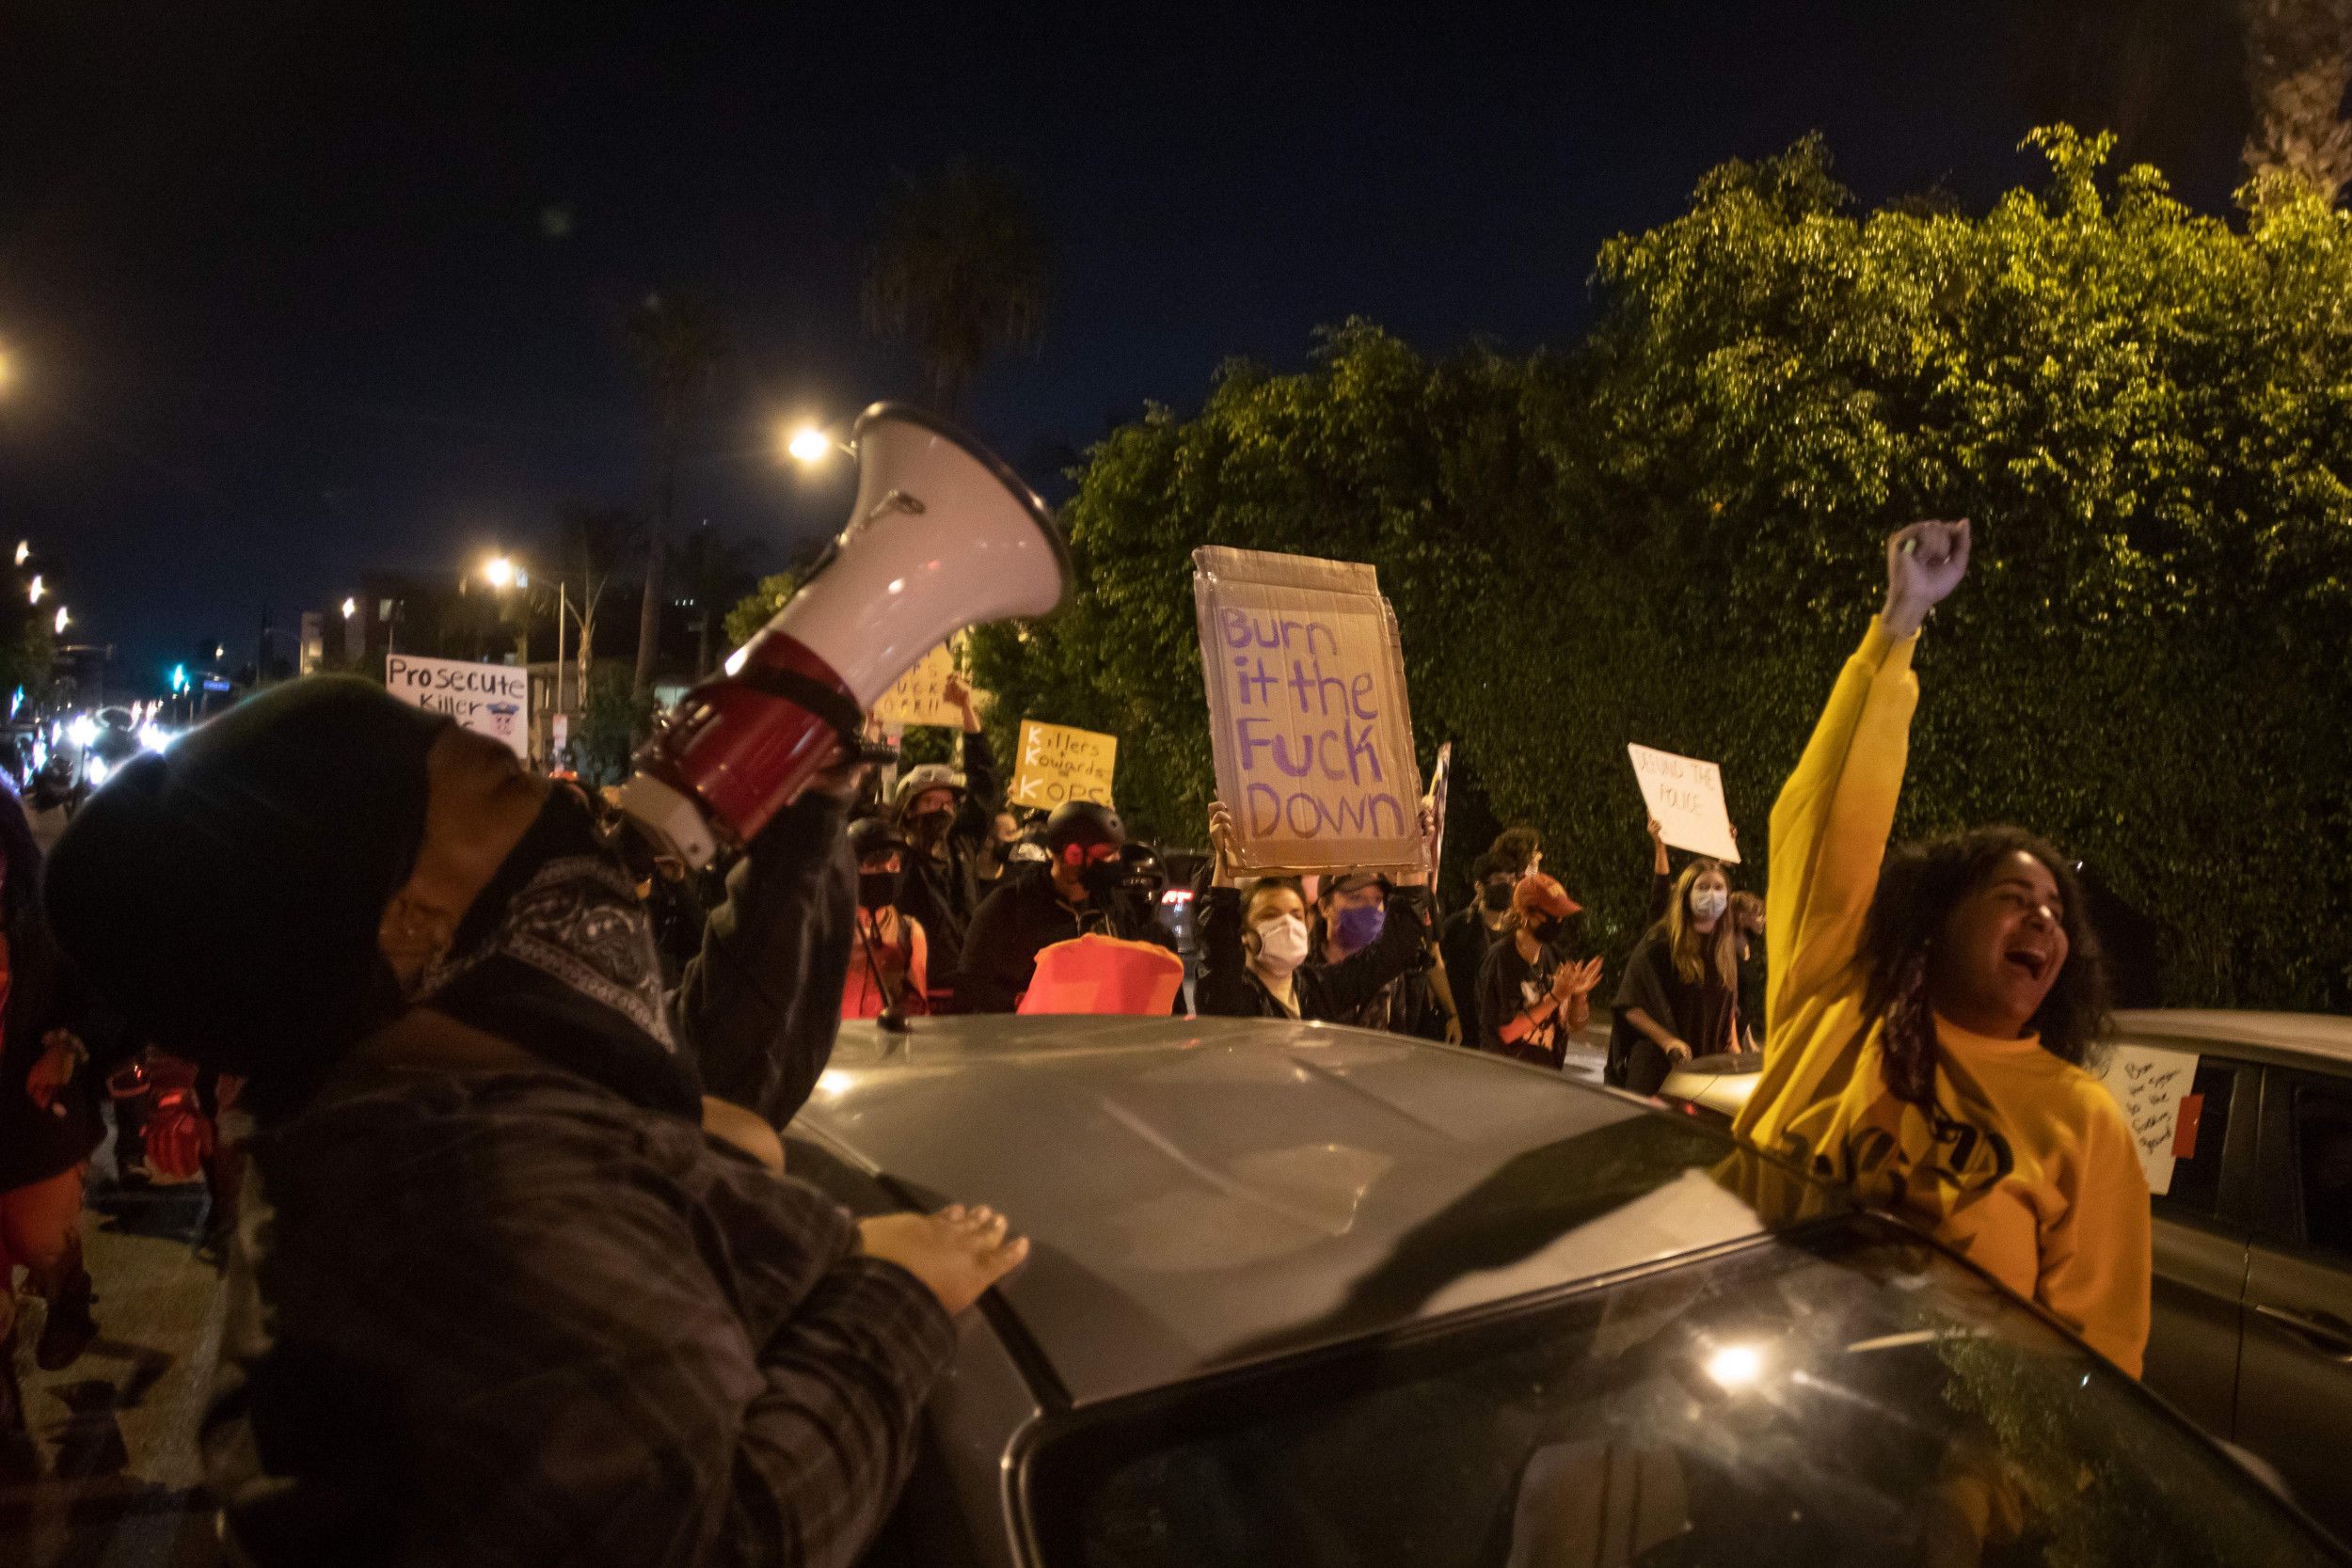 Third driver plows car through crowd of Black Lives Matter protesters in California